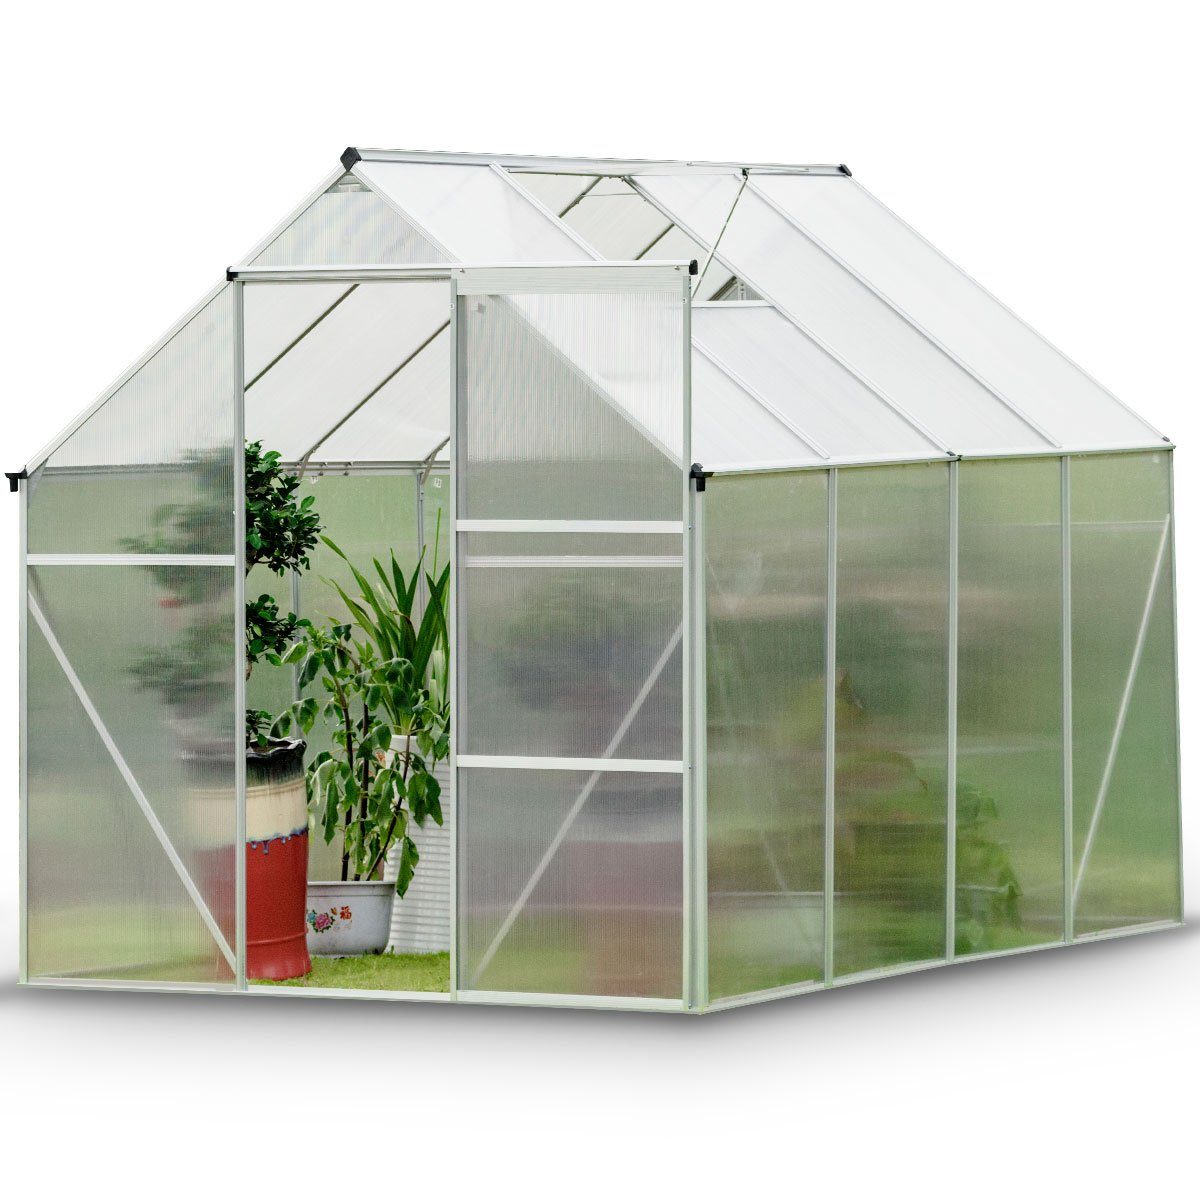 Giantex Walk-in Greenhouse Plant Growing Tent Large Green Garden Hot House with Adjustable Roof Vent, Rain Gutters Heavy Duty Polycarbonate Aluminum Frame (6.2'L x 8.2'D) by Giantex (Image #1)